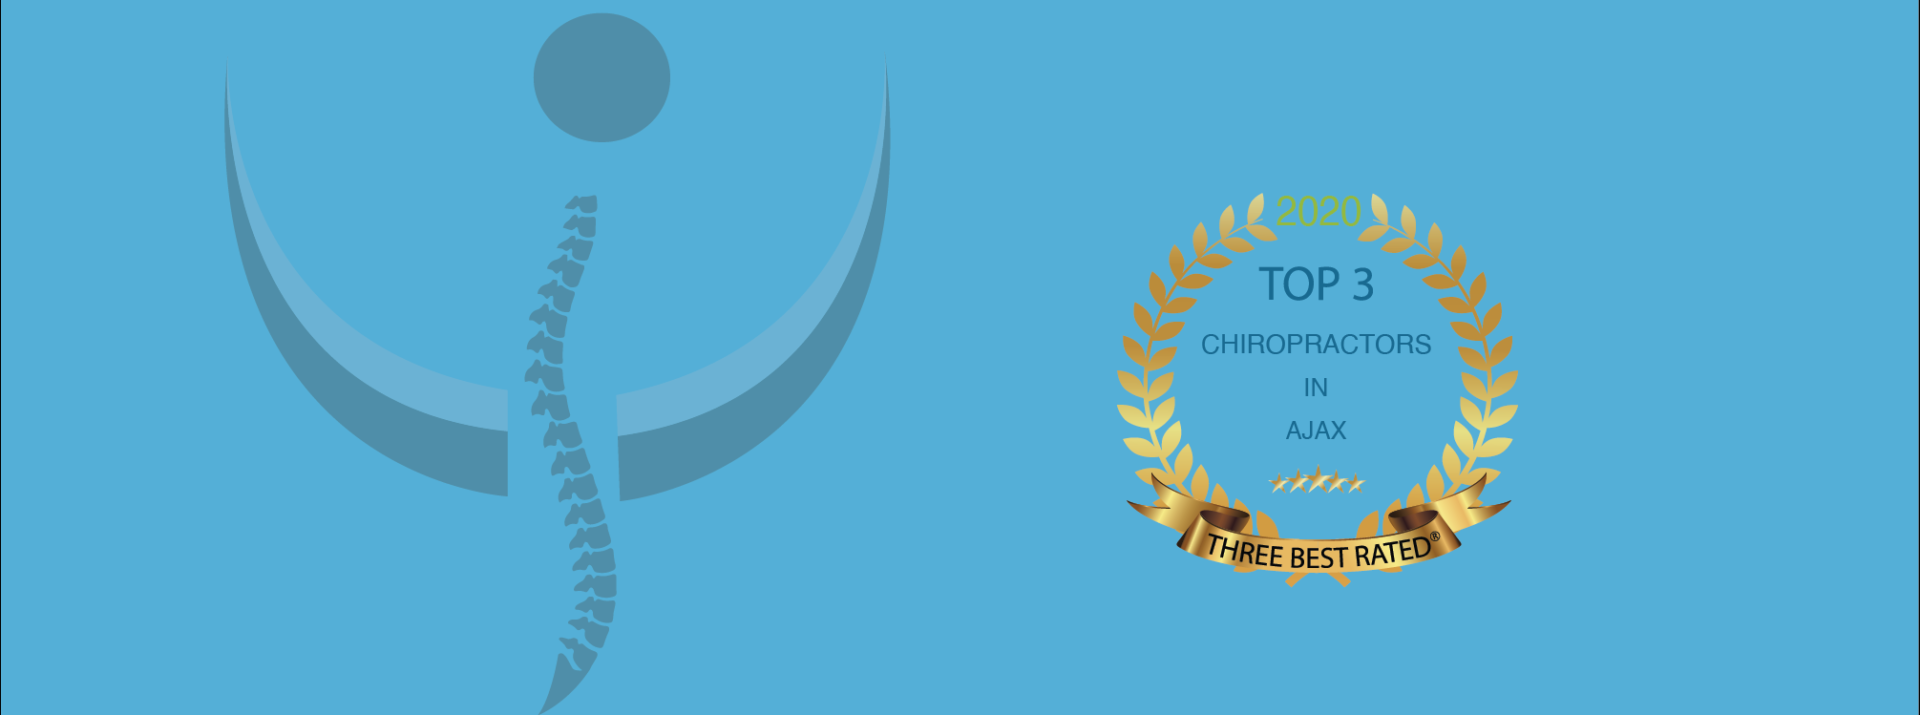 Awarded ThreeBest Rated® Chiropractors in Ajax